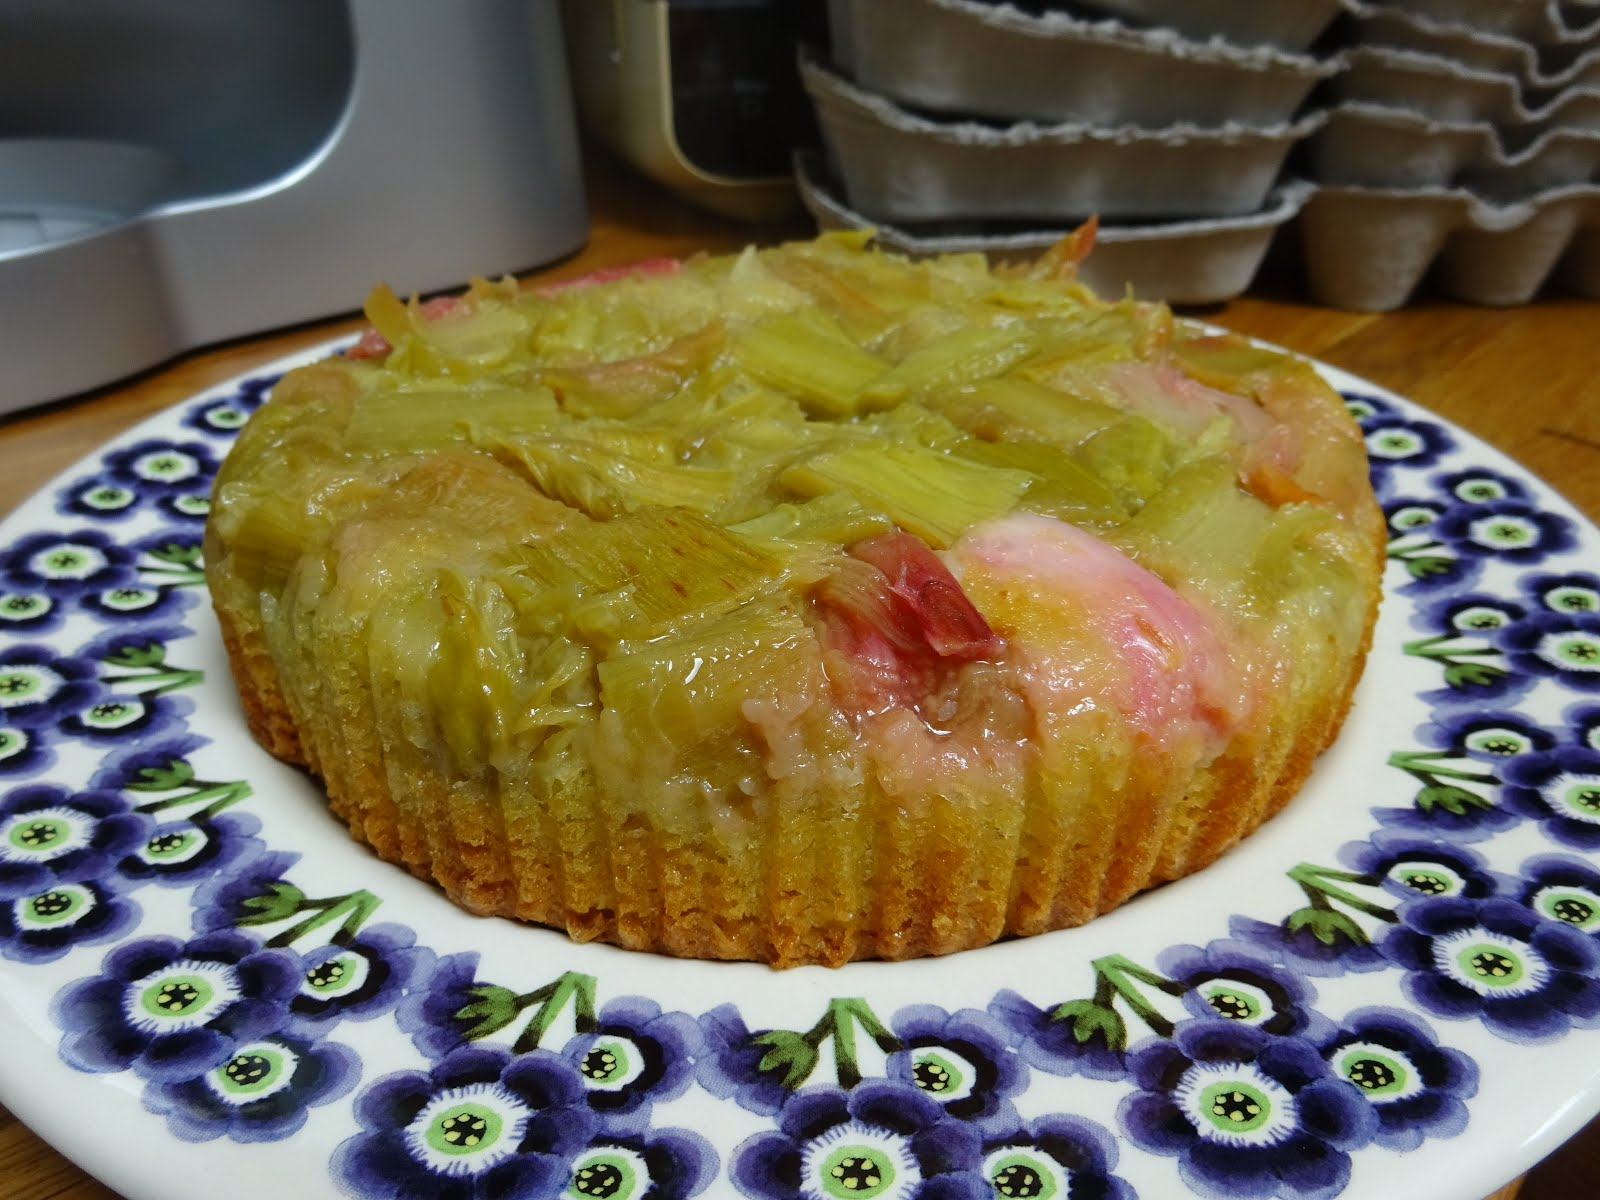 July - Rhubarb Upside Down Cake